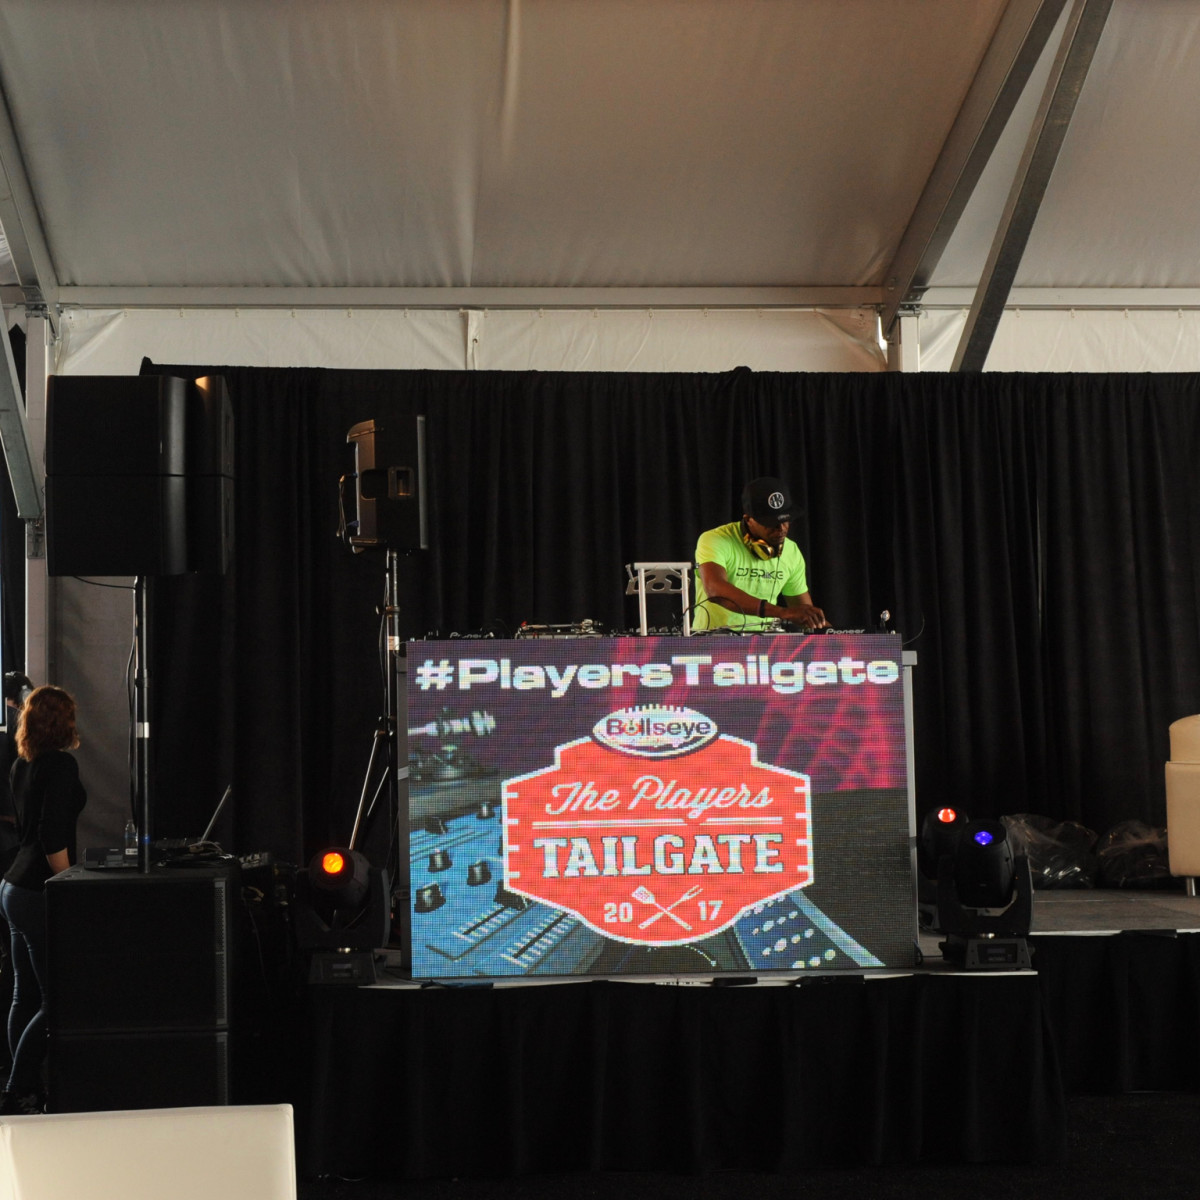 Players Tailgate DJ Irie